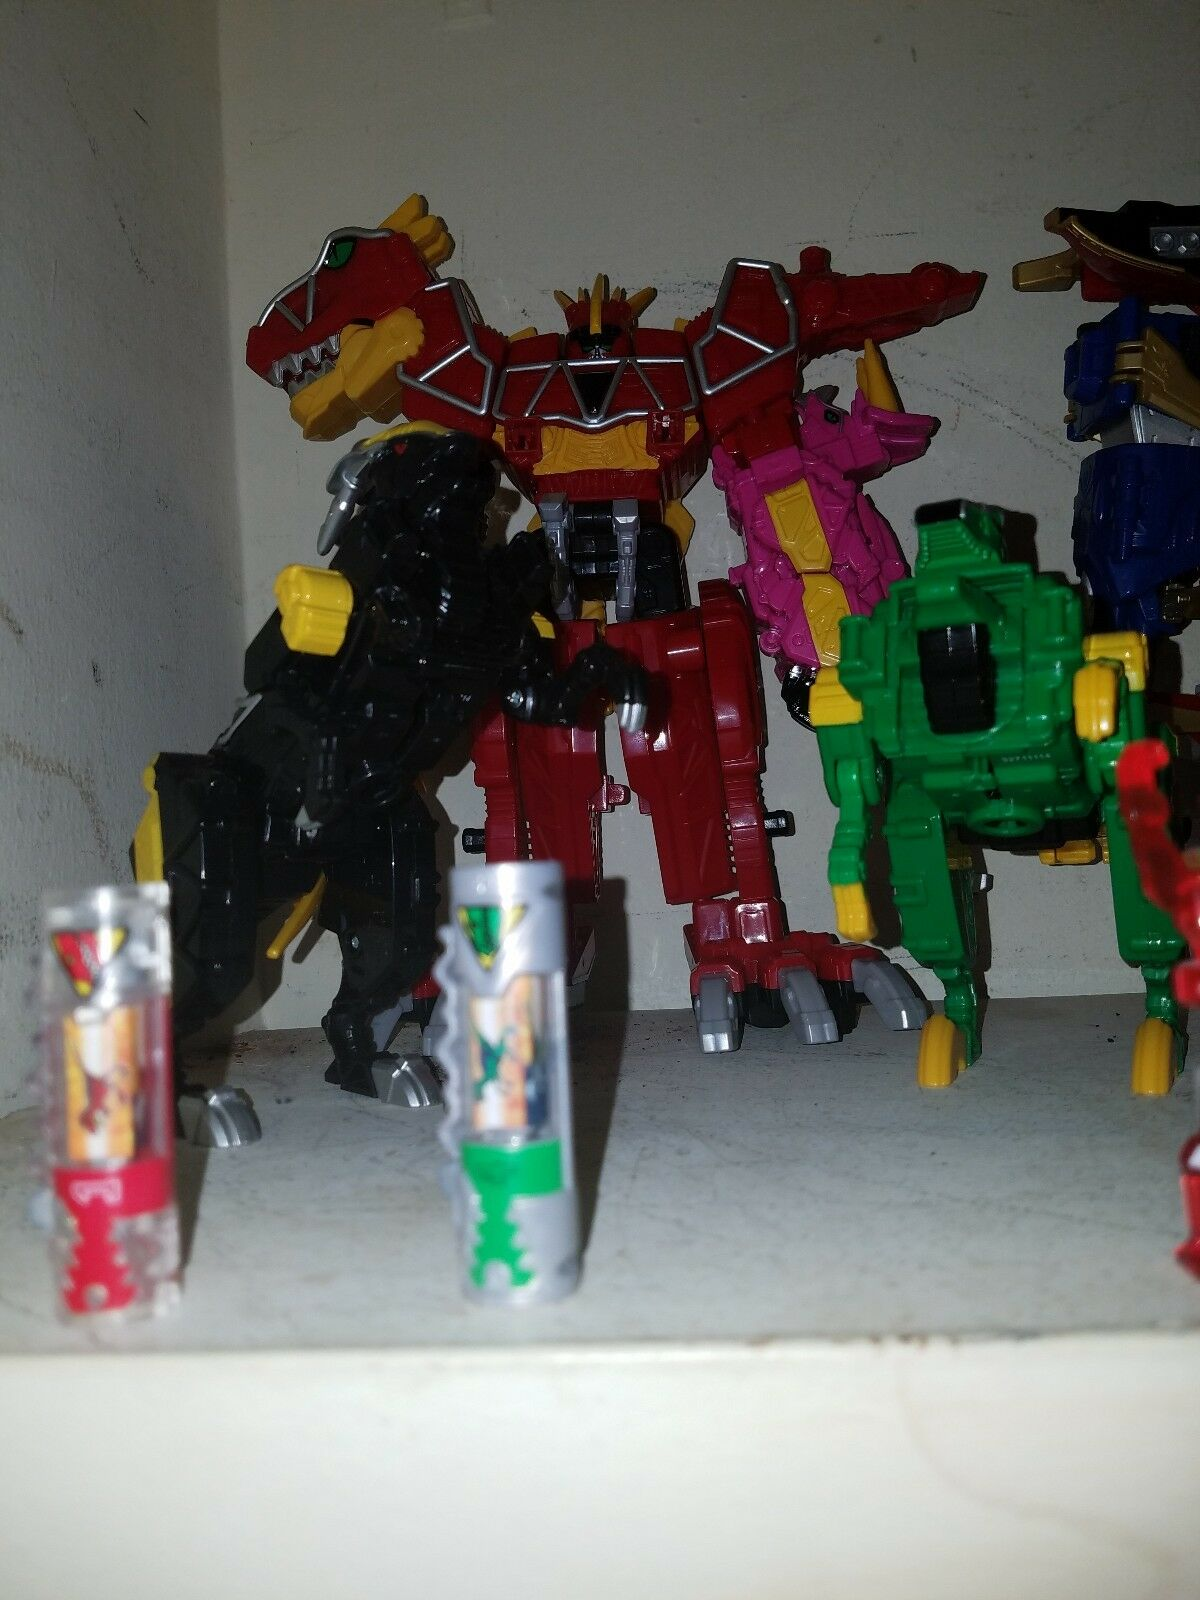 Power rangers collection all in good good good codition 135196